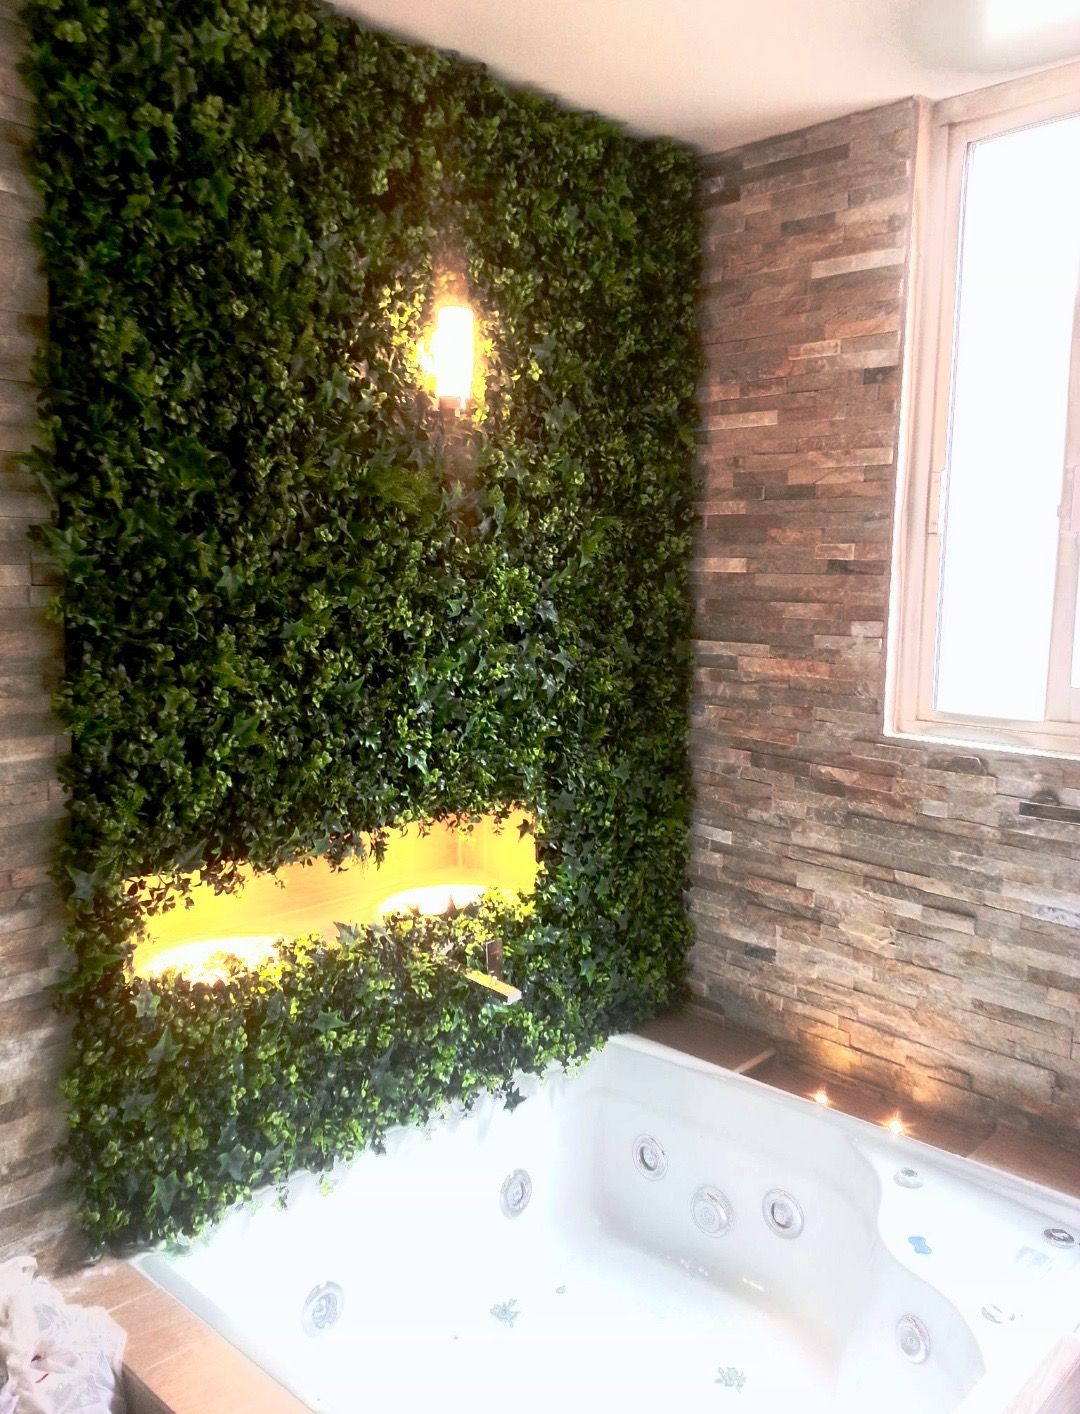 bathroom design with stone walls and artificial hedge